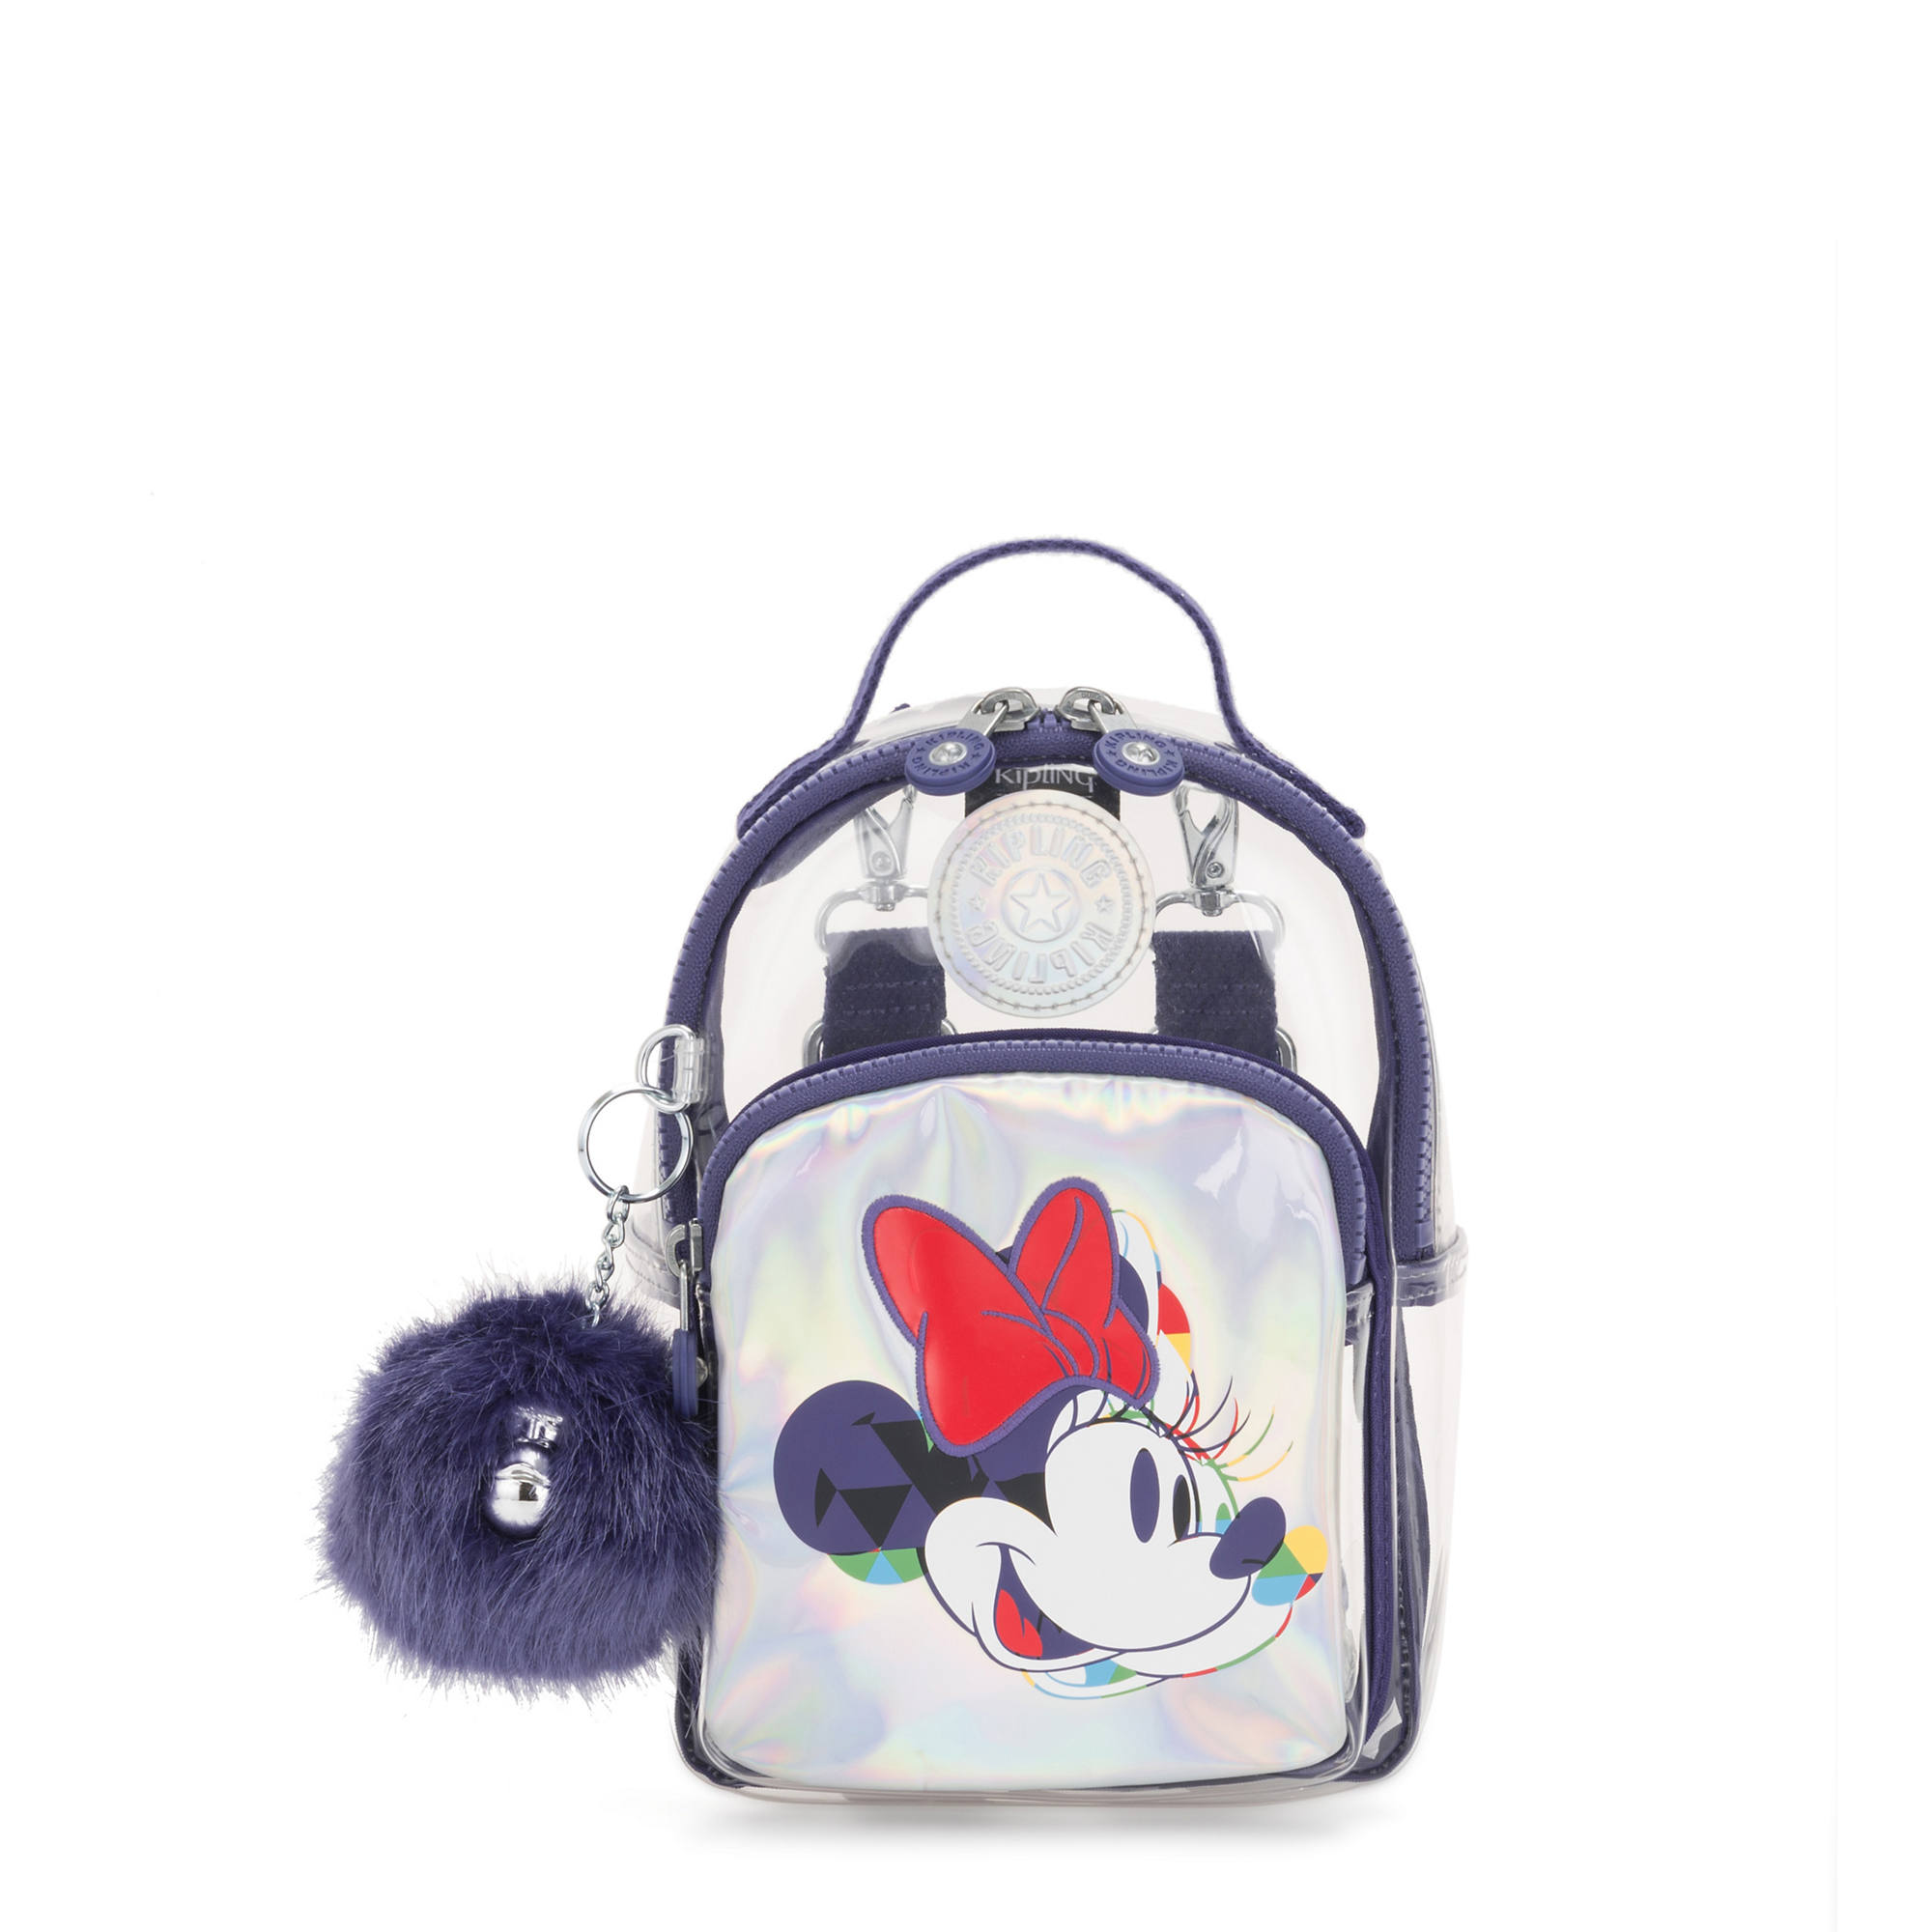 Disneys Minnie Mouse And Mickey Mouse 3 In 1 Alber Convertible Mini